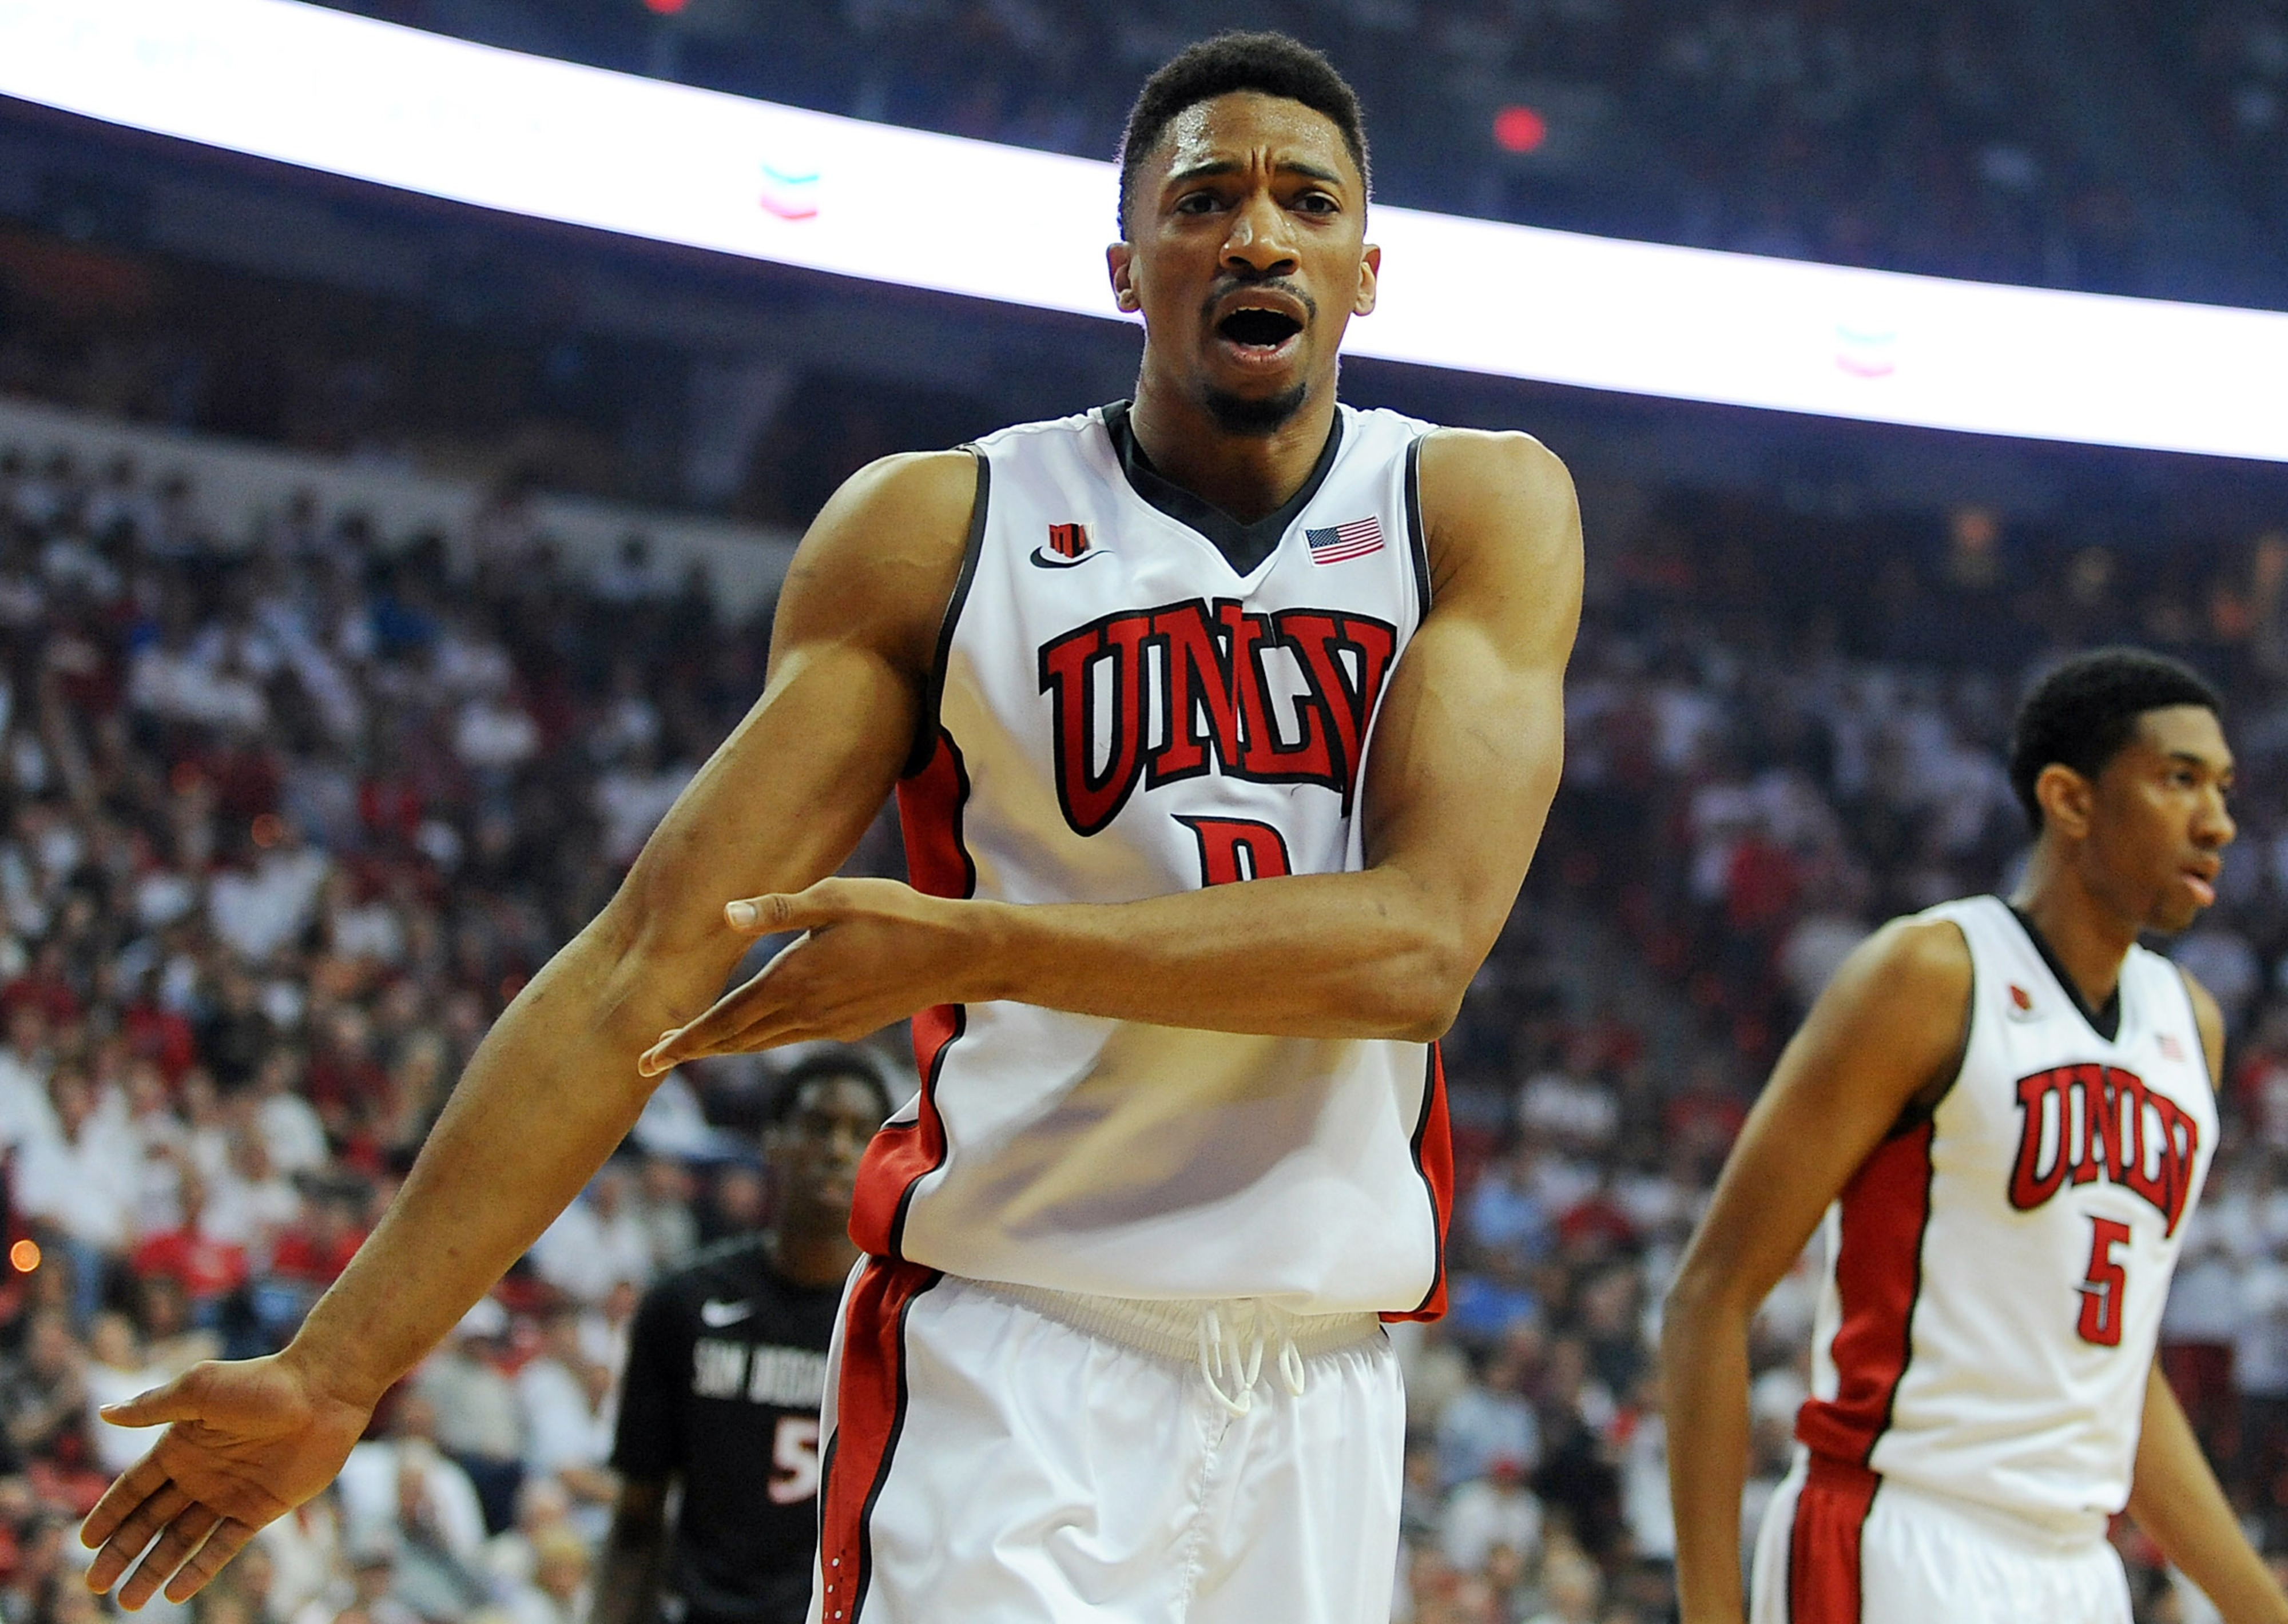 Khem Birch is one of the higher rated draft prospects who wasn't selected in the 2014 NBA Draft.